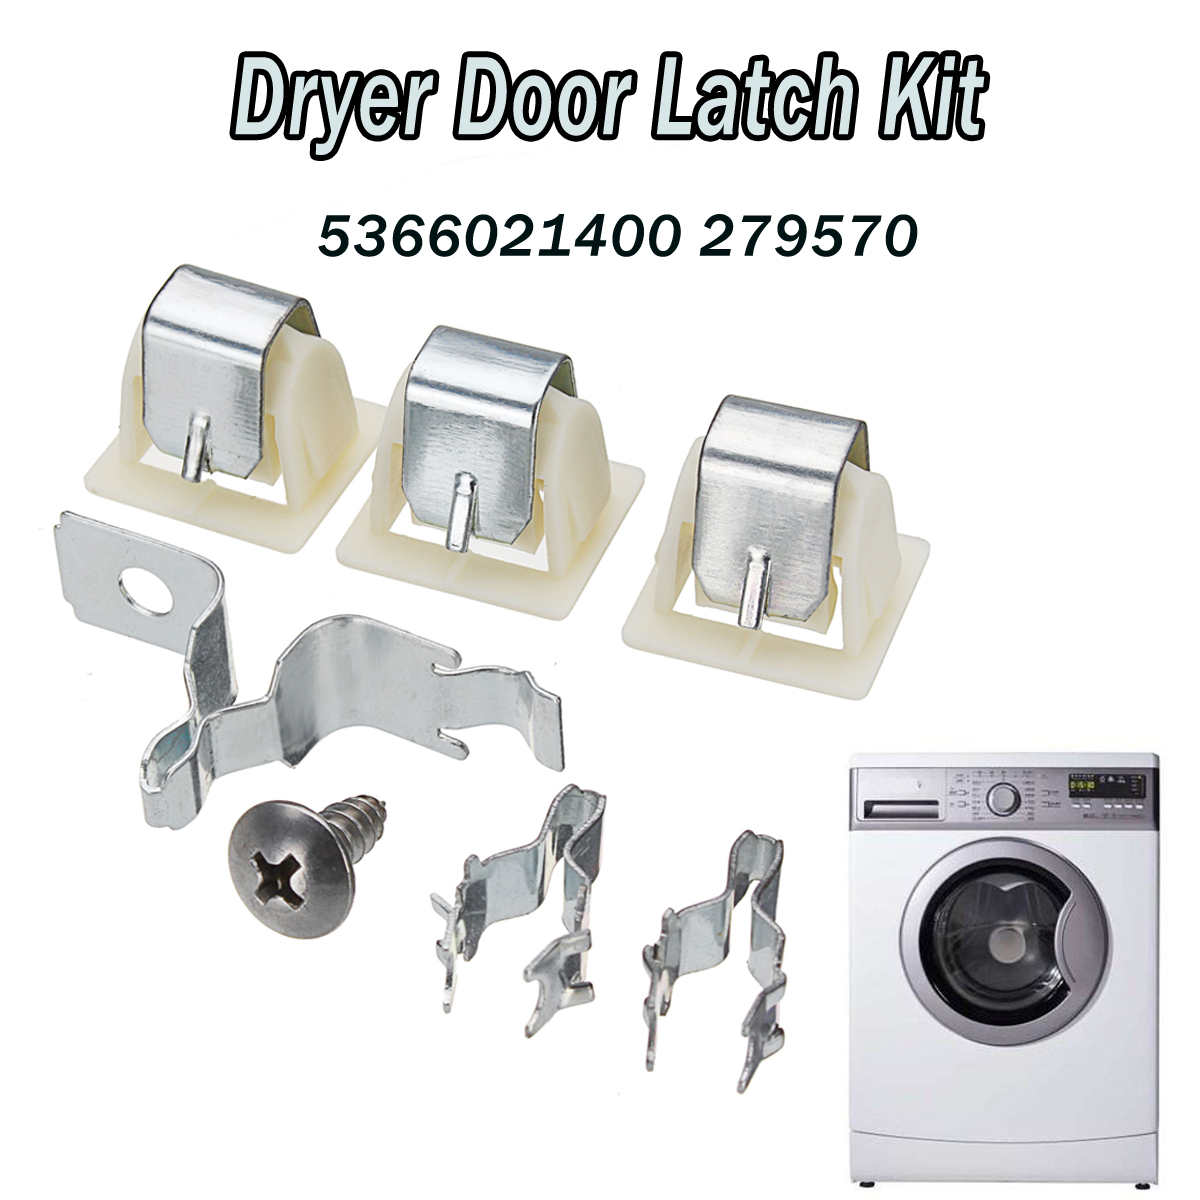 Dryer Door Latch Kit Part For Electrolux Frigidaire  5366021400 279570